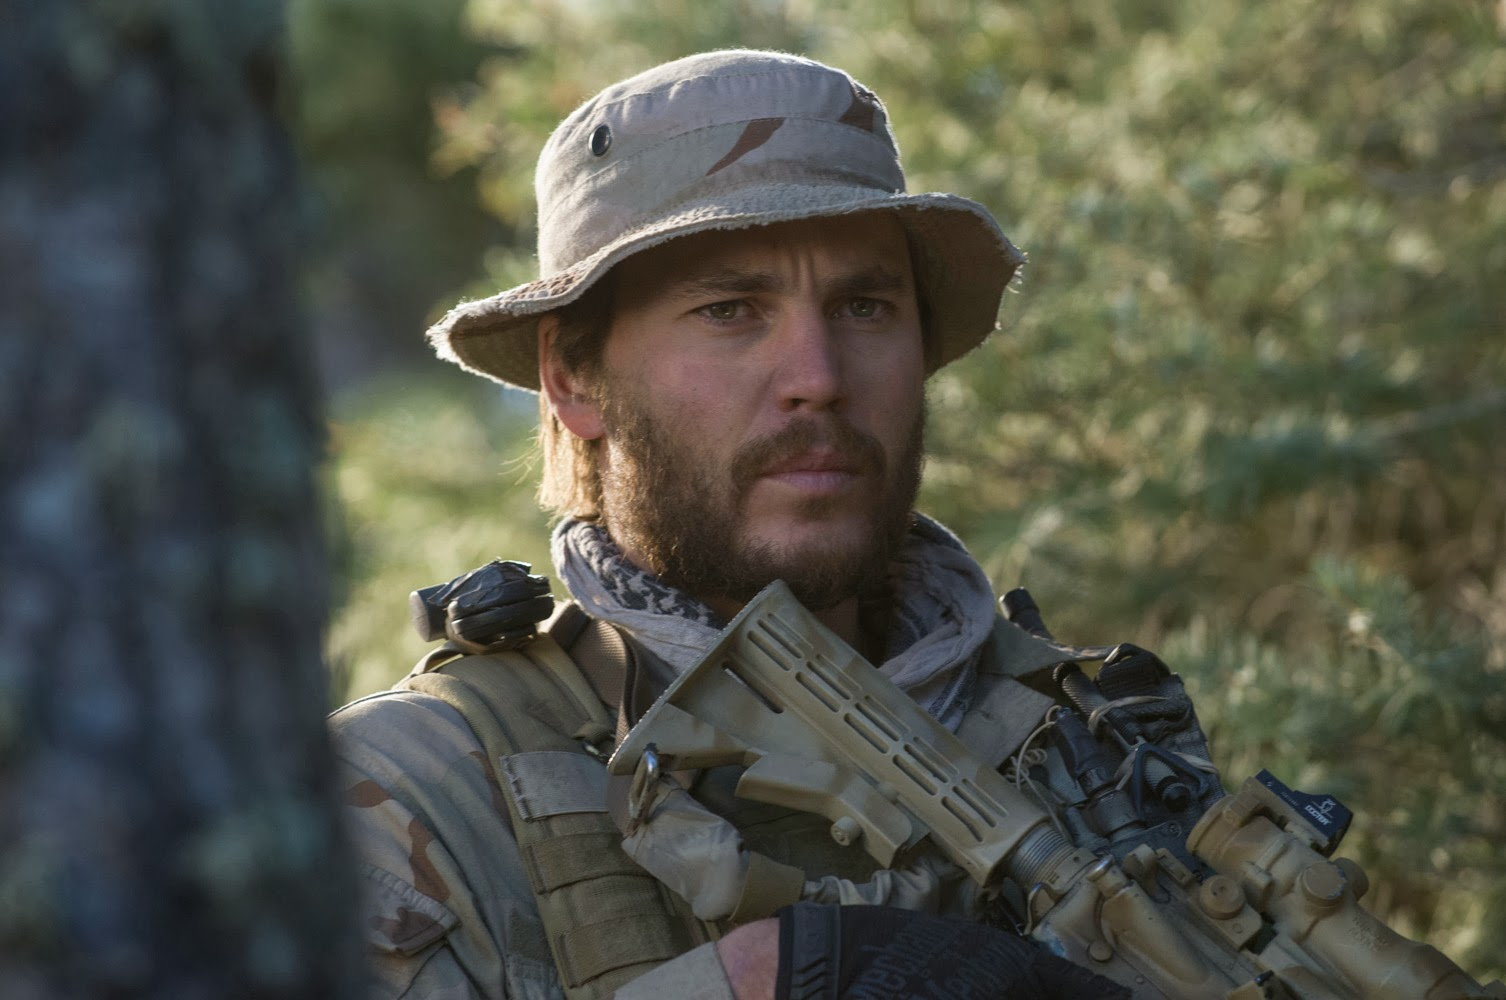 Movie Buff's Reviews: TAYLOR KITSCH PLAYS REAL-LIFE NAVY ...